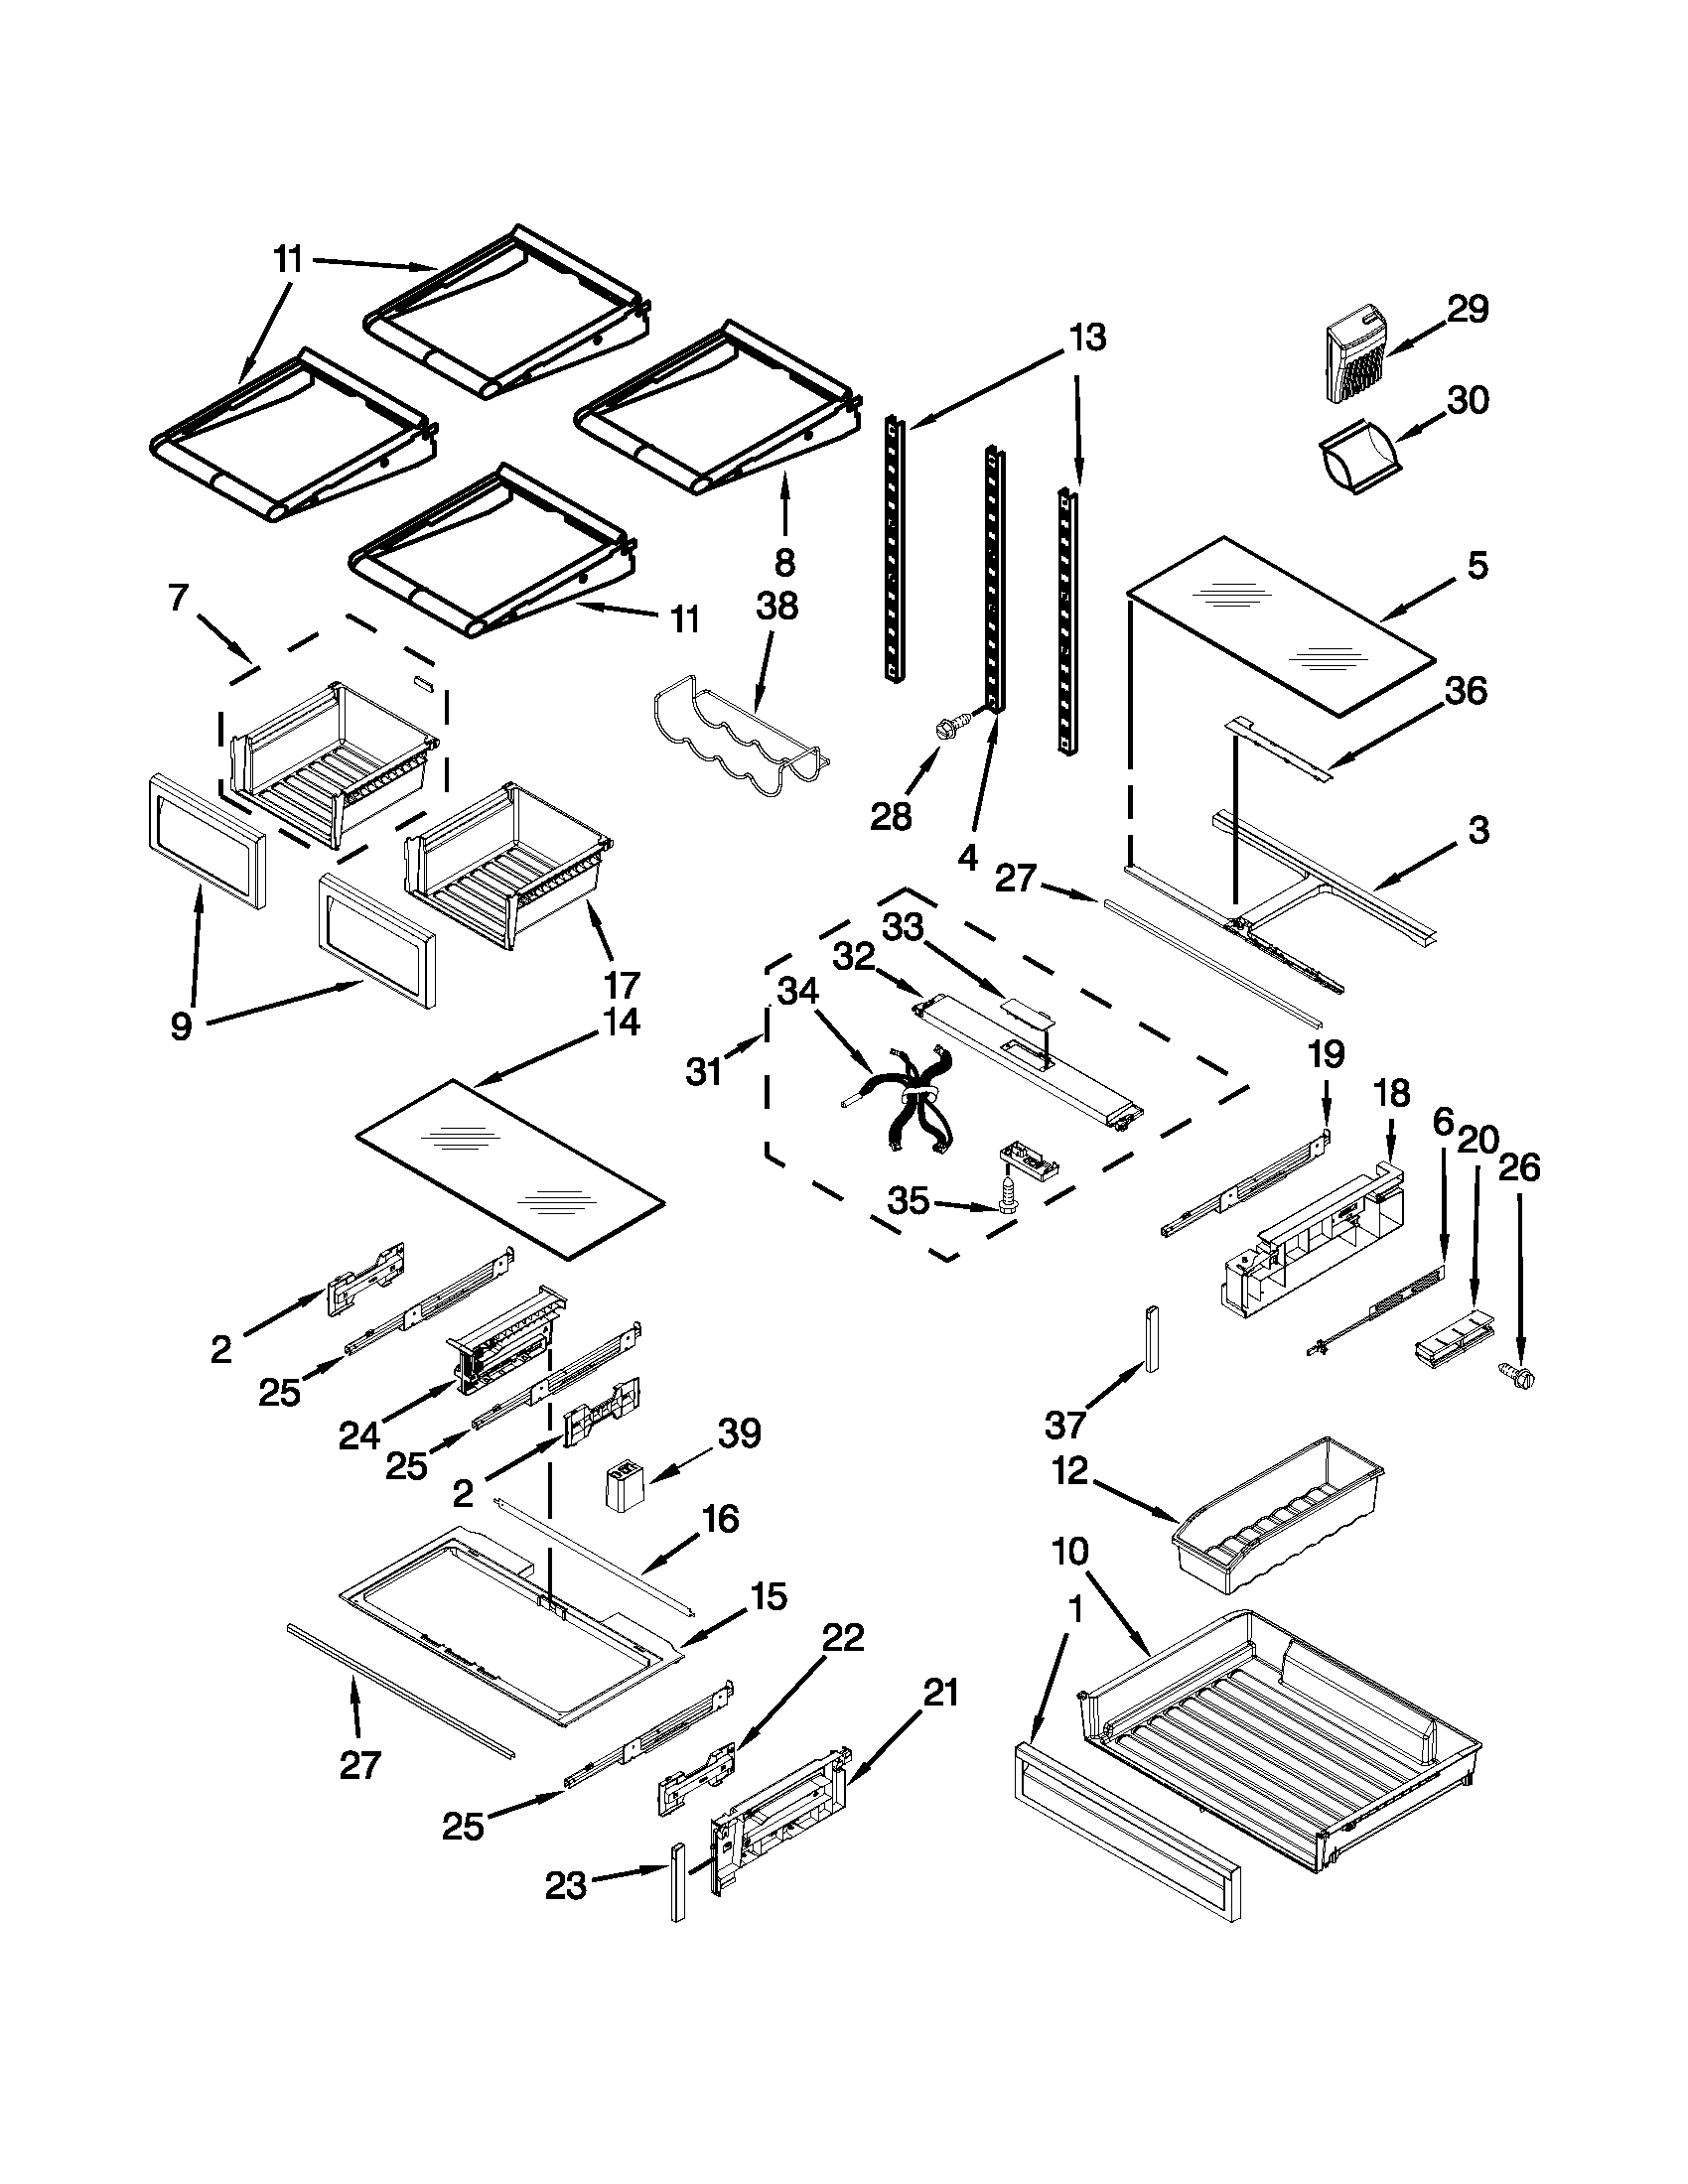 SHELF PARTS Diagram & Parts List for Model kfiv29pcms00